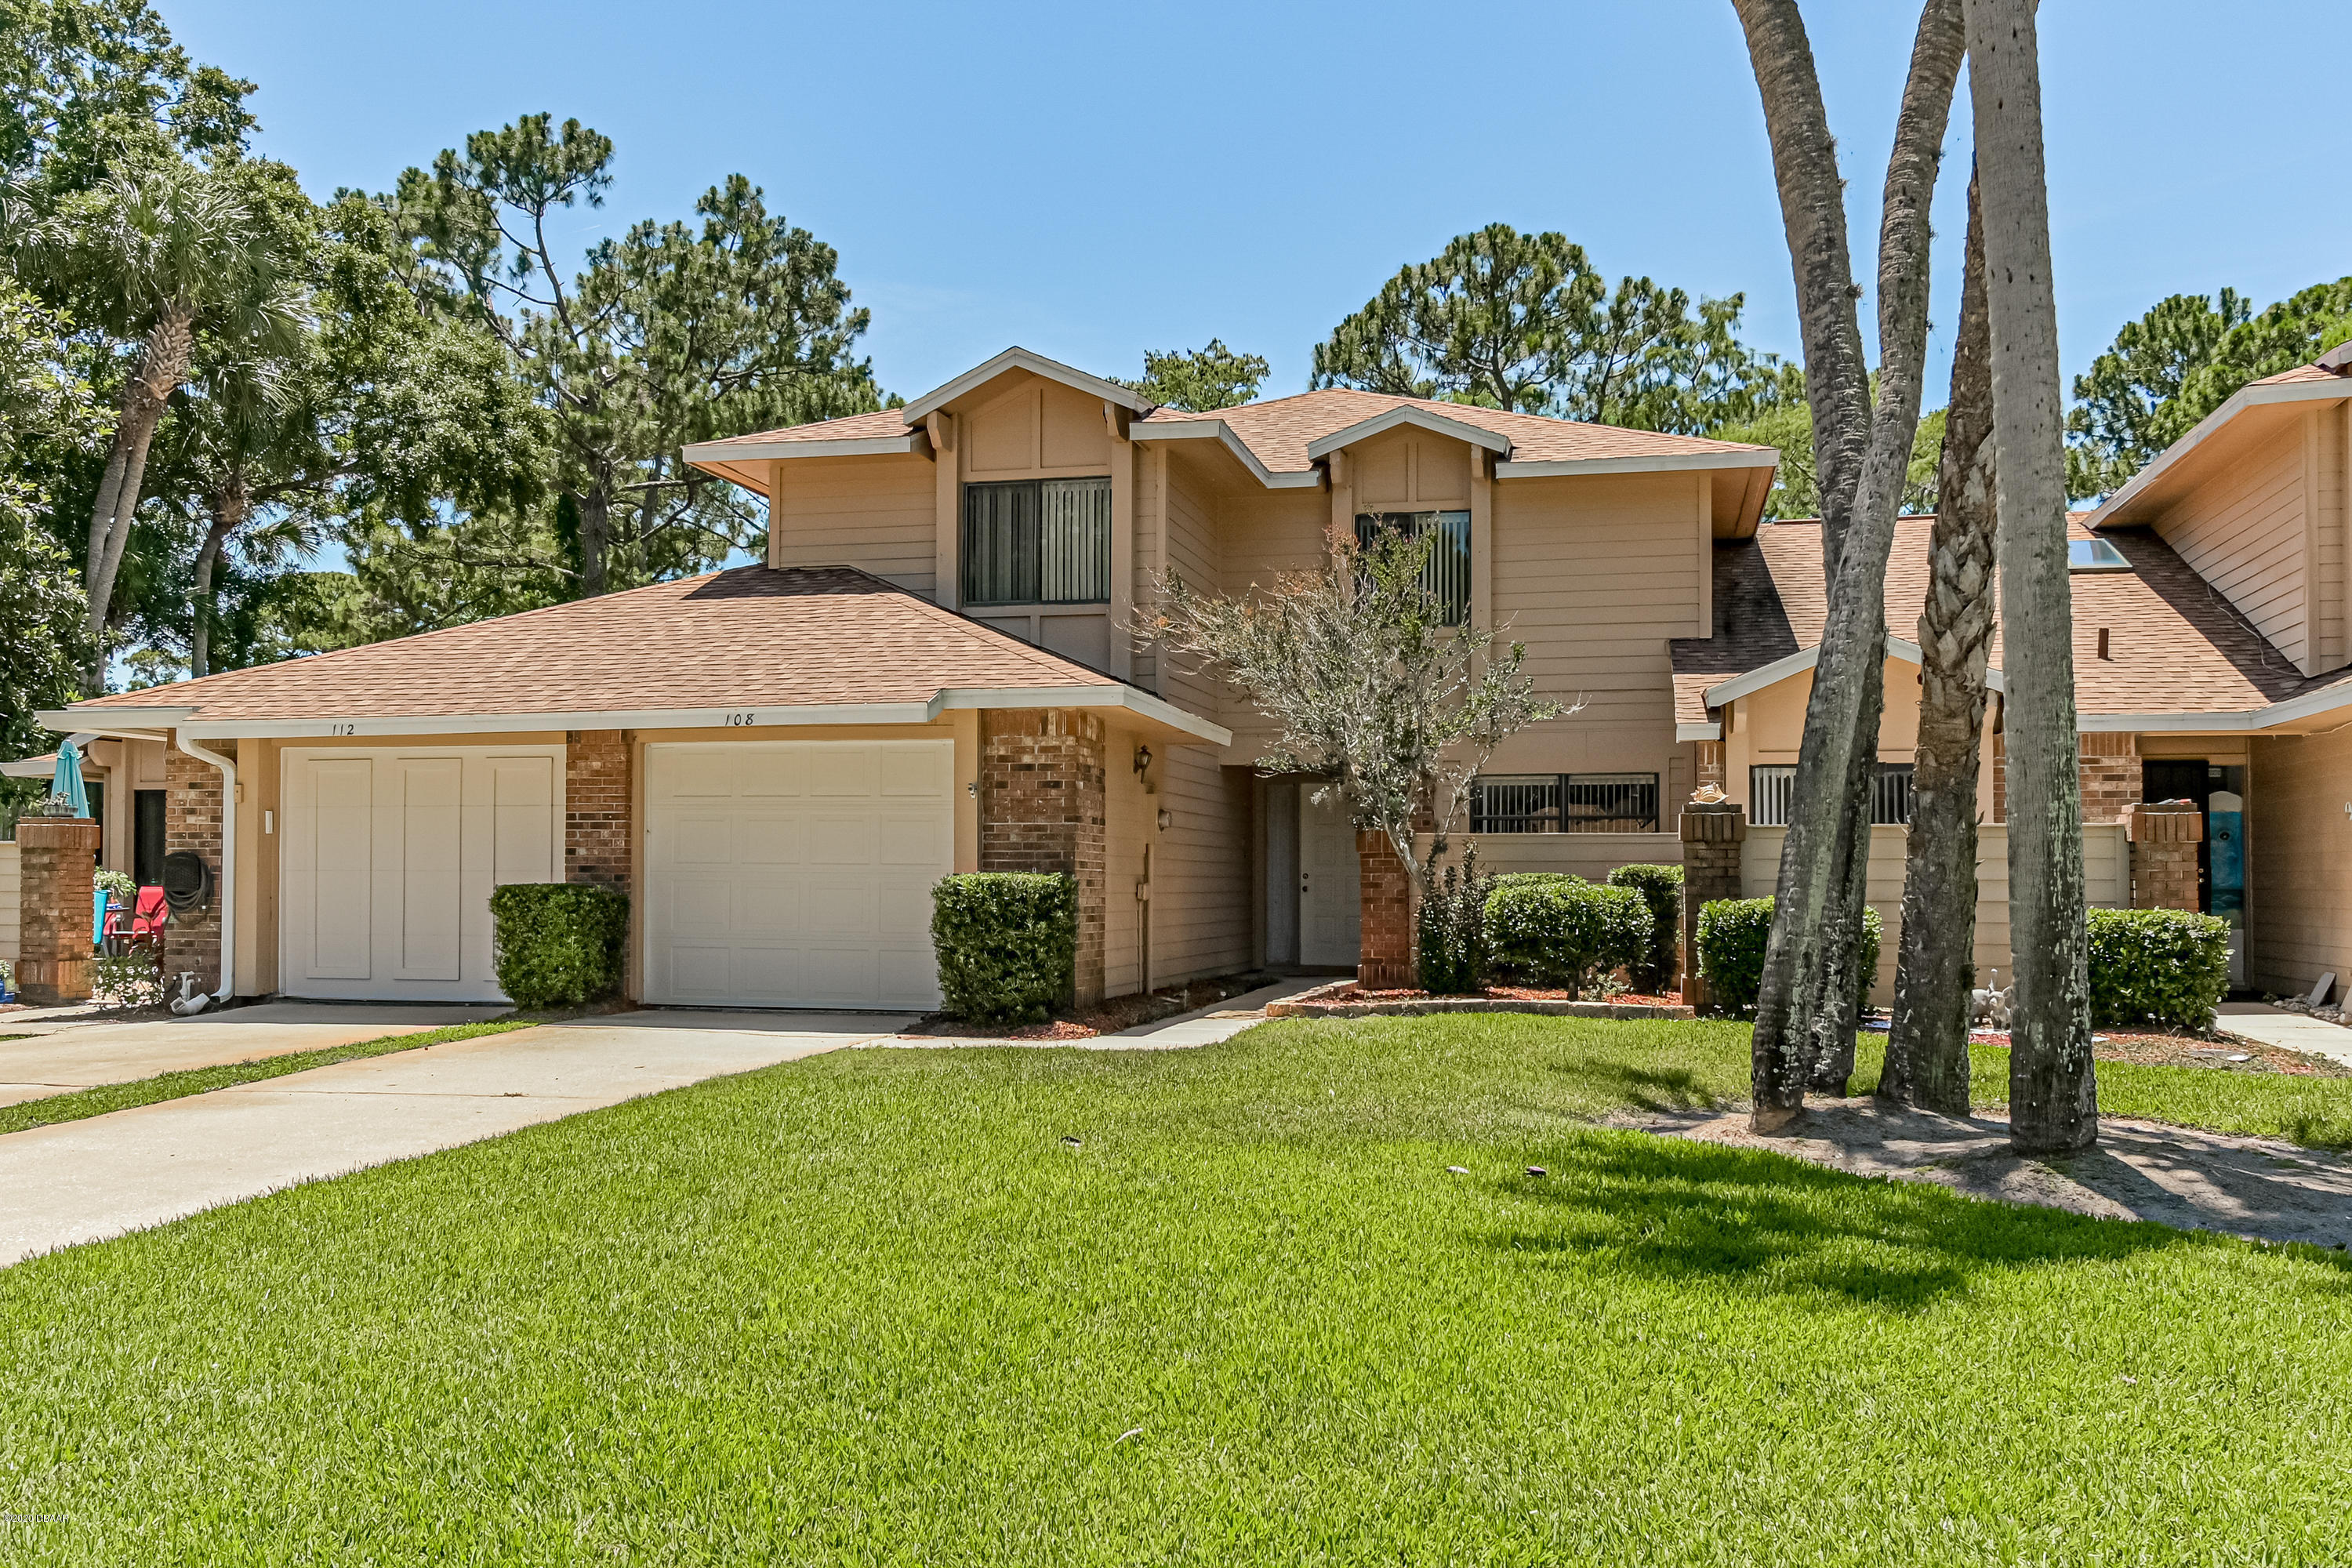 Photo of 108 Laughing Gull Court, Daytona Beach, FL 32119